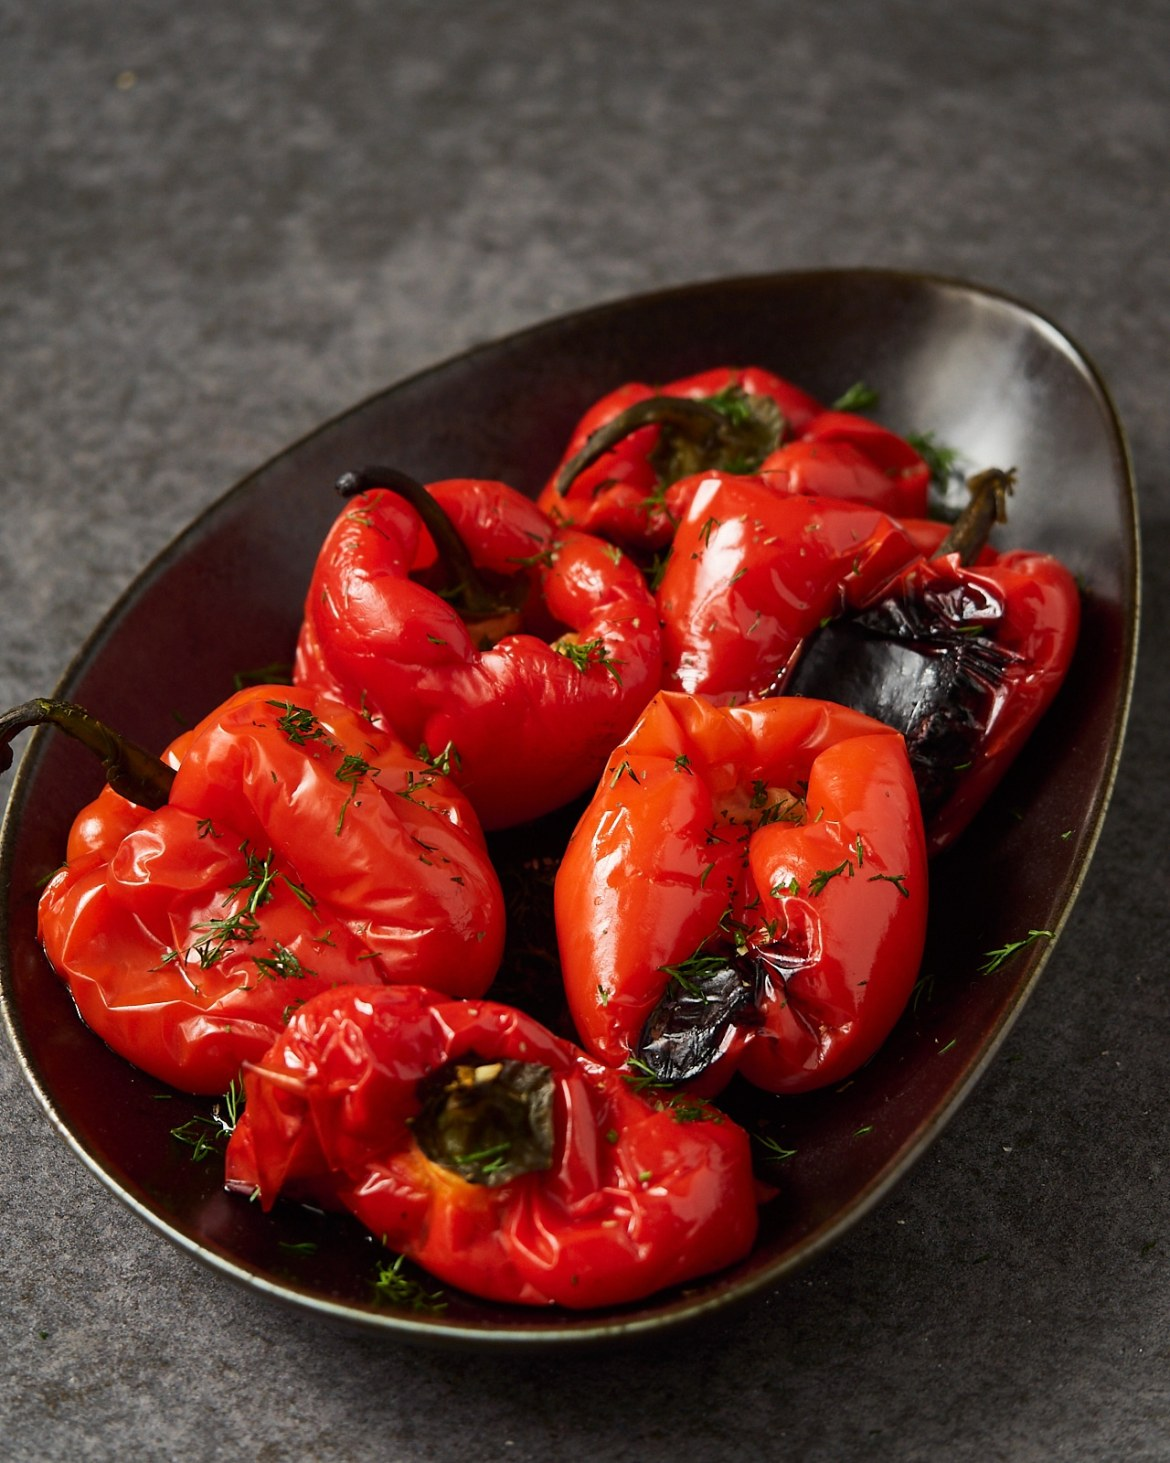 roasted peppers in tomato sauce